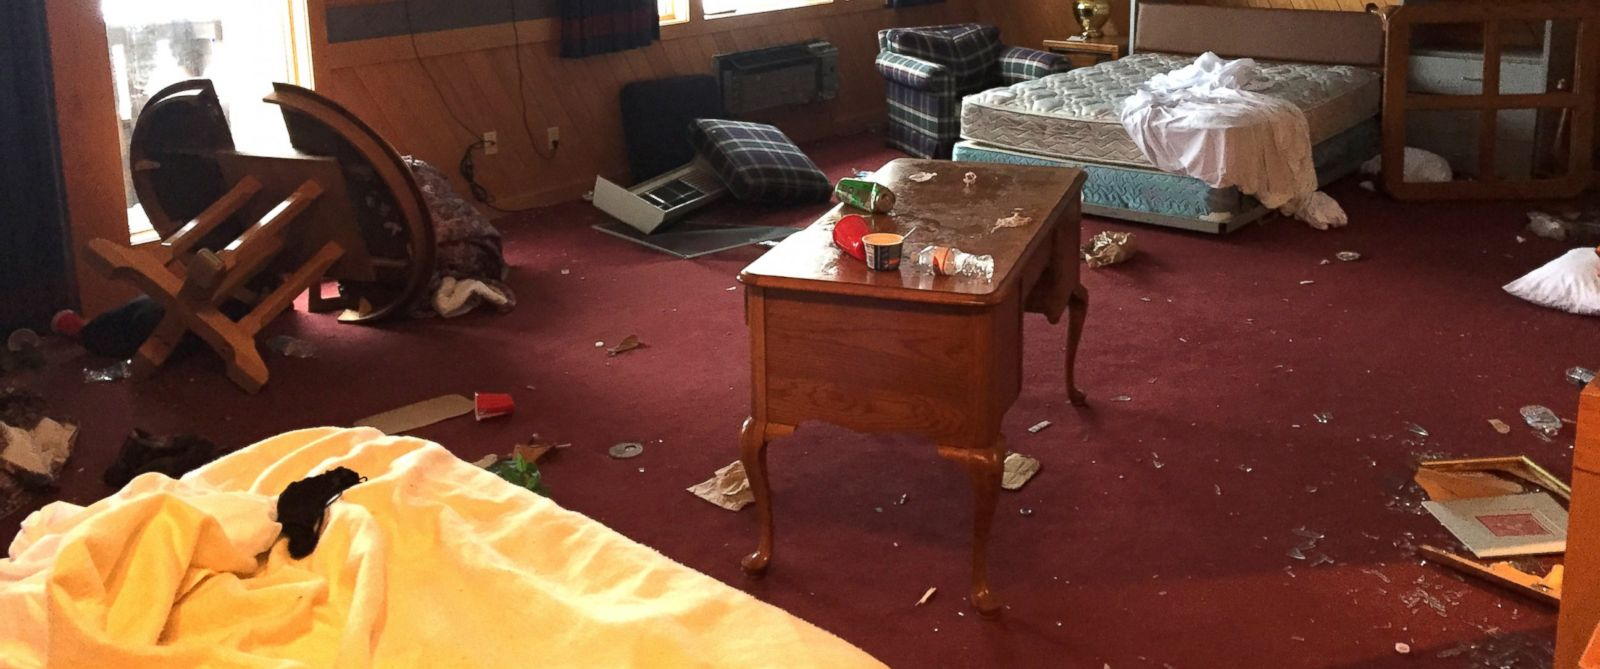 PHOTO: Photo of the damage Treetops Resort claims was done by a University of Michigan fraternity.